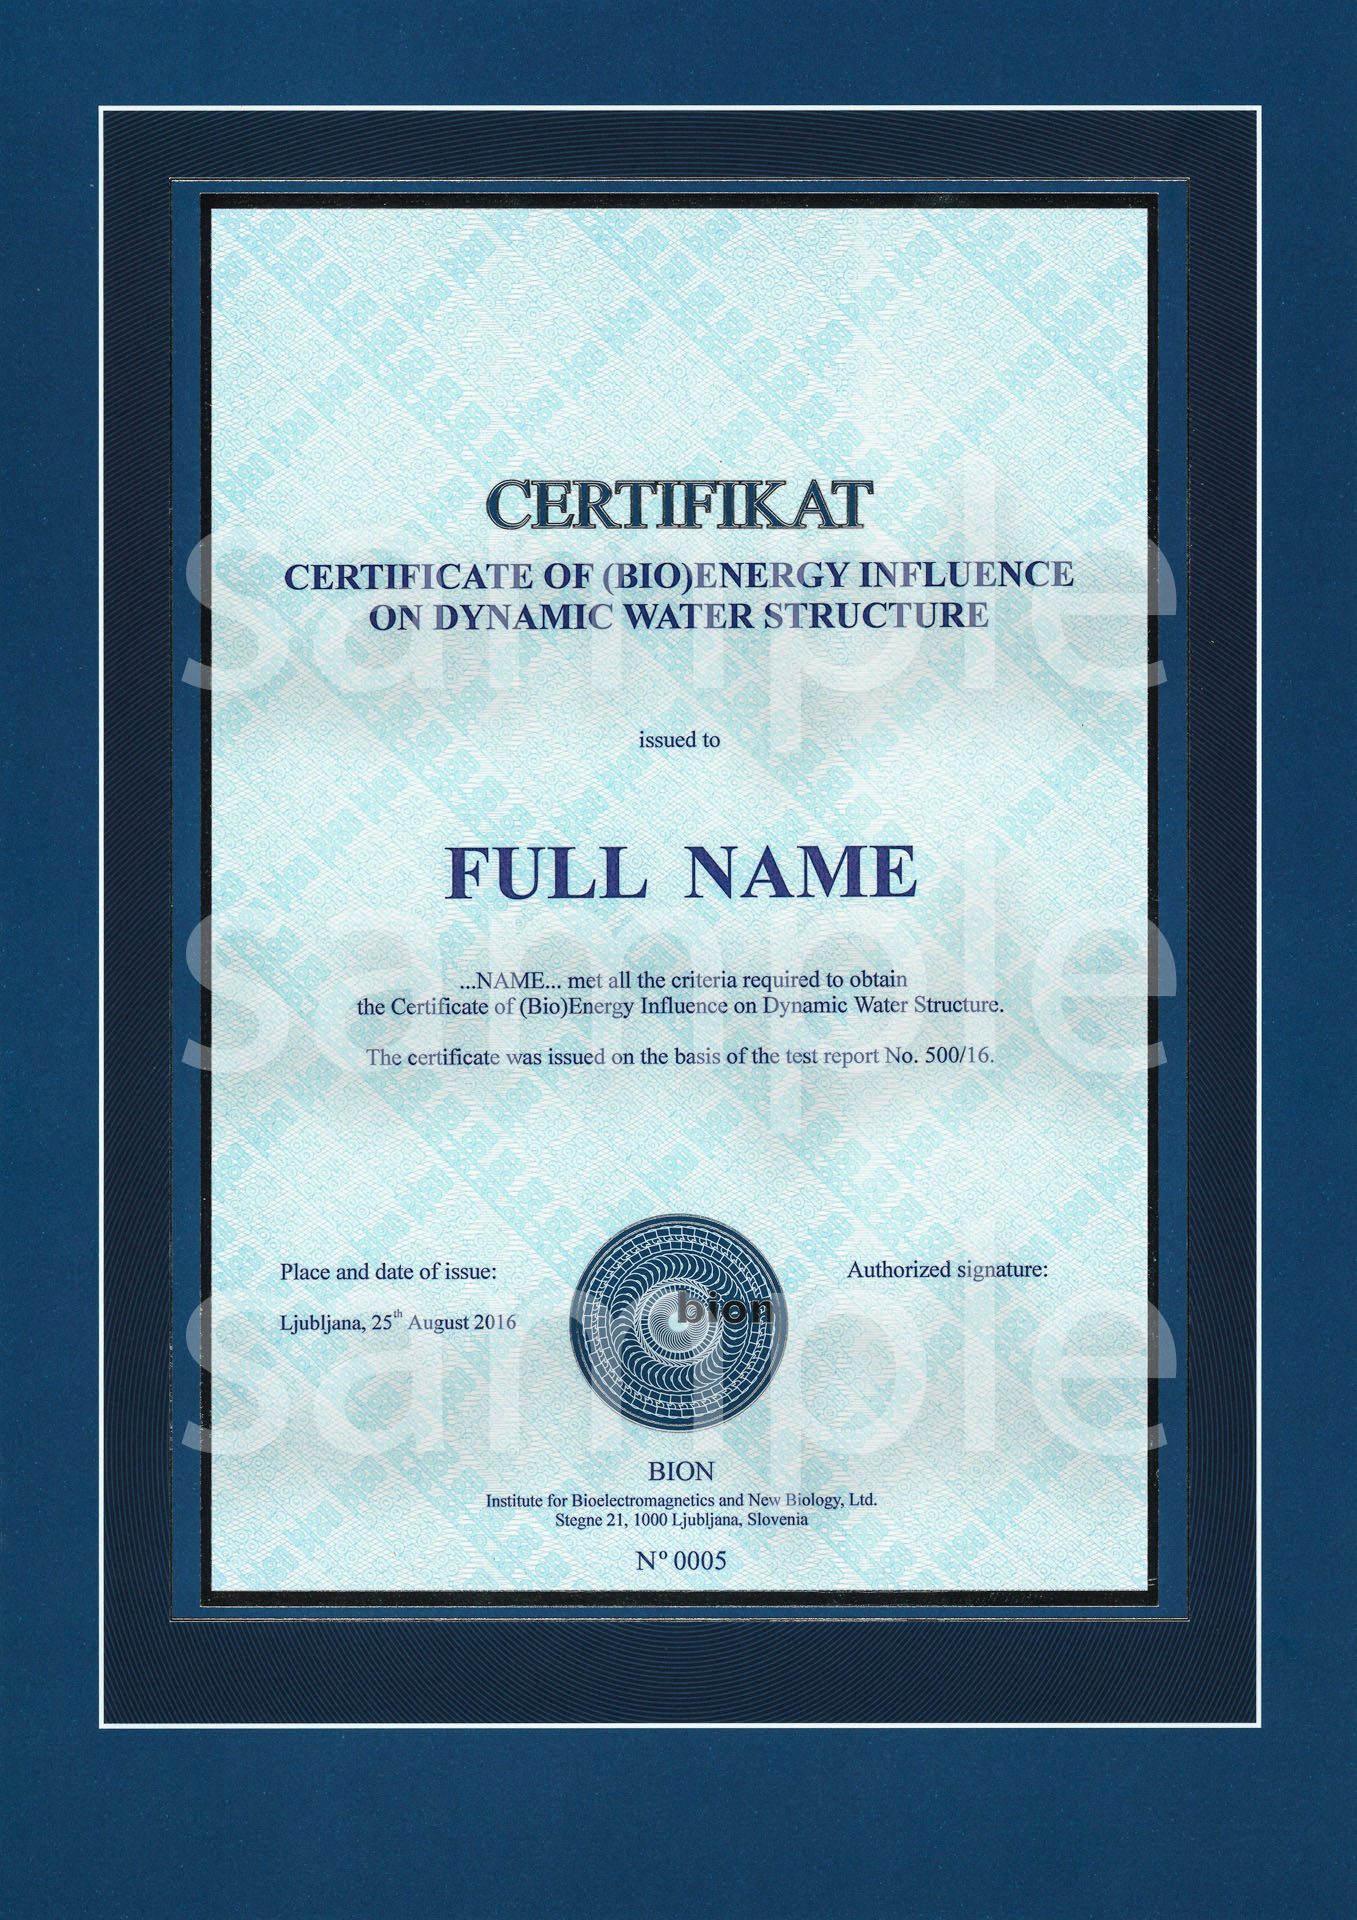 bion_institute-certifikat_of_bioenergy_impact_on_water